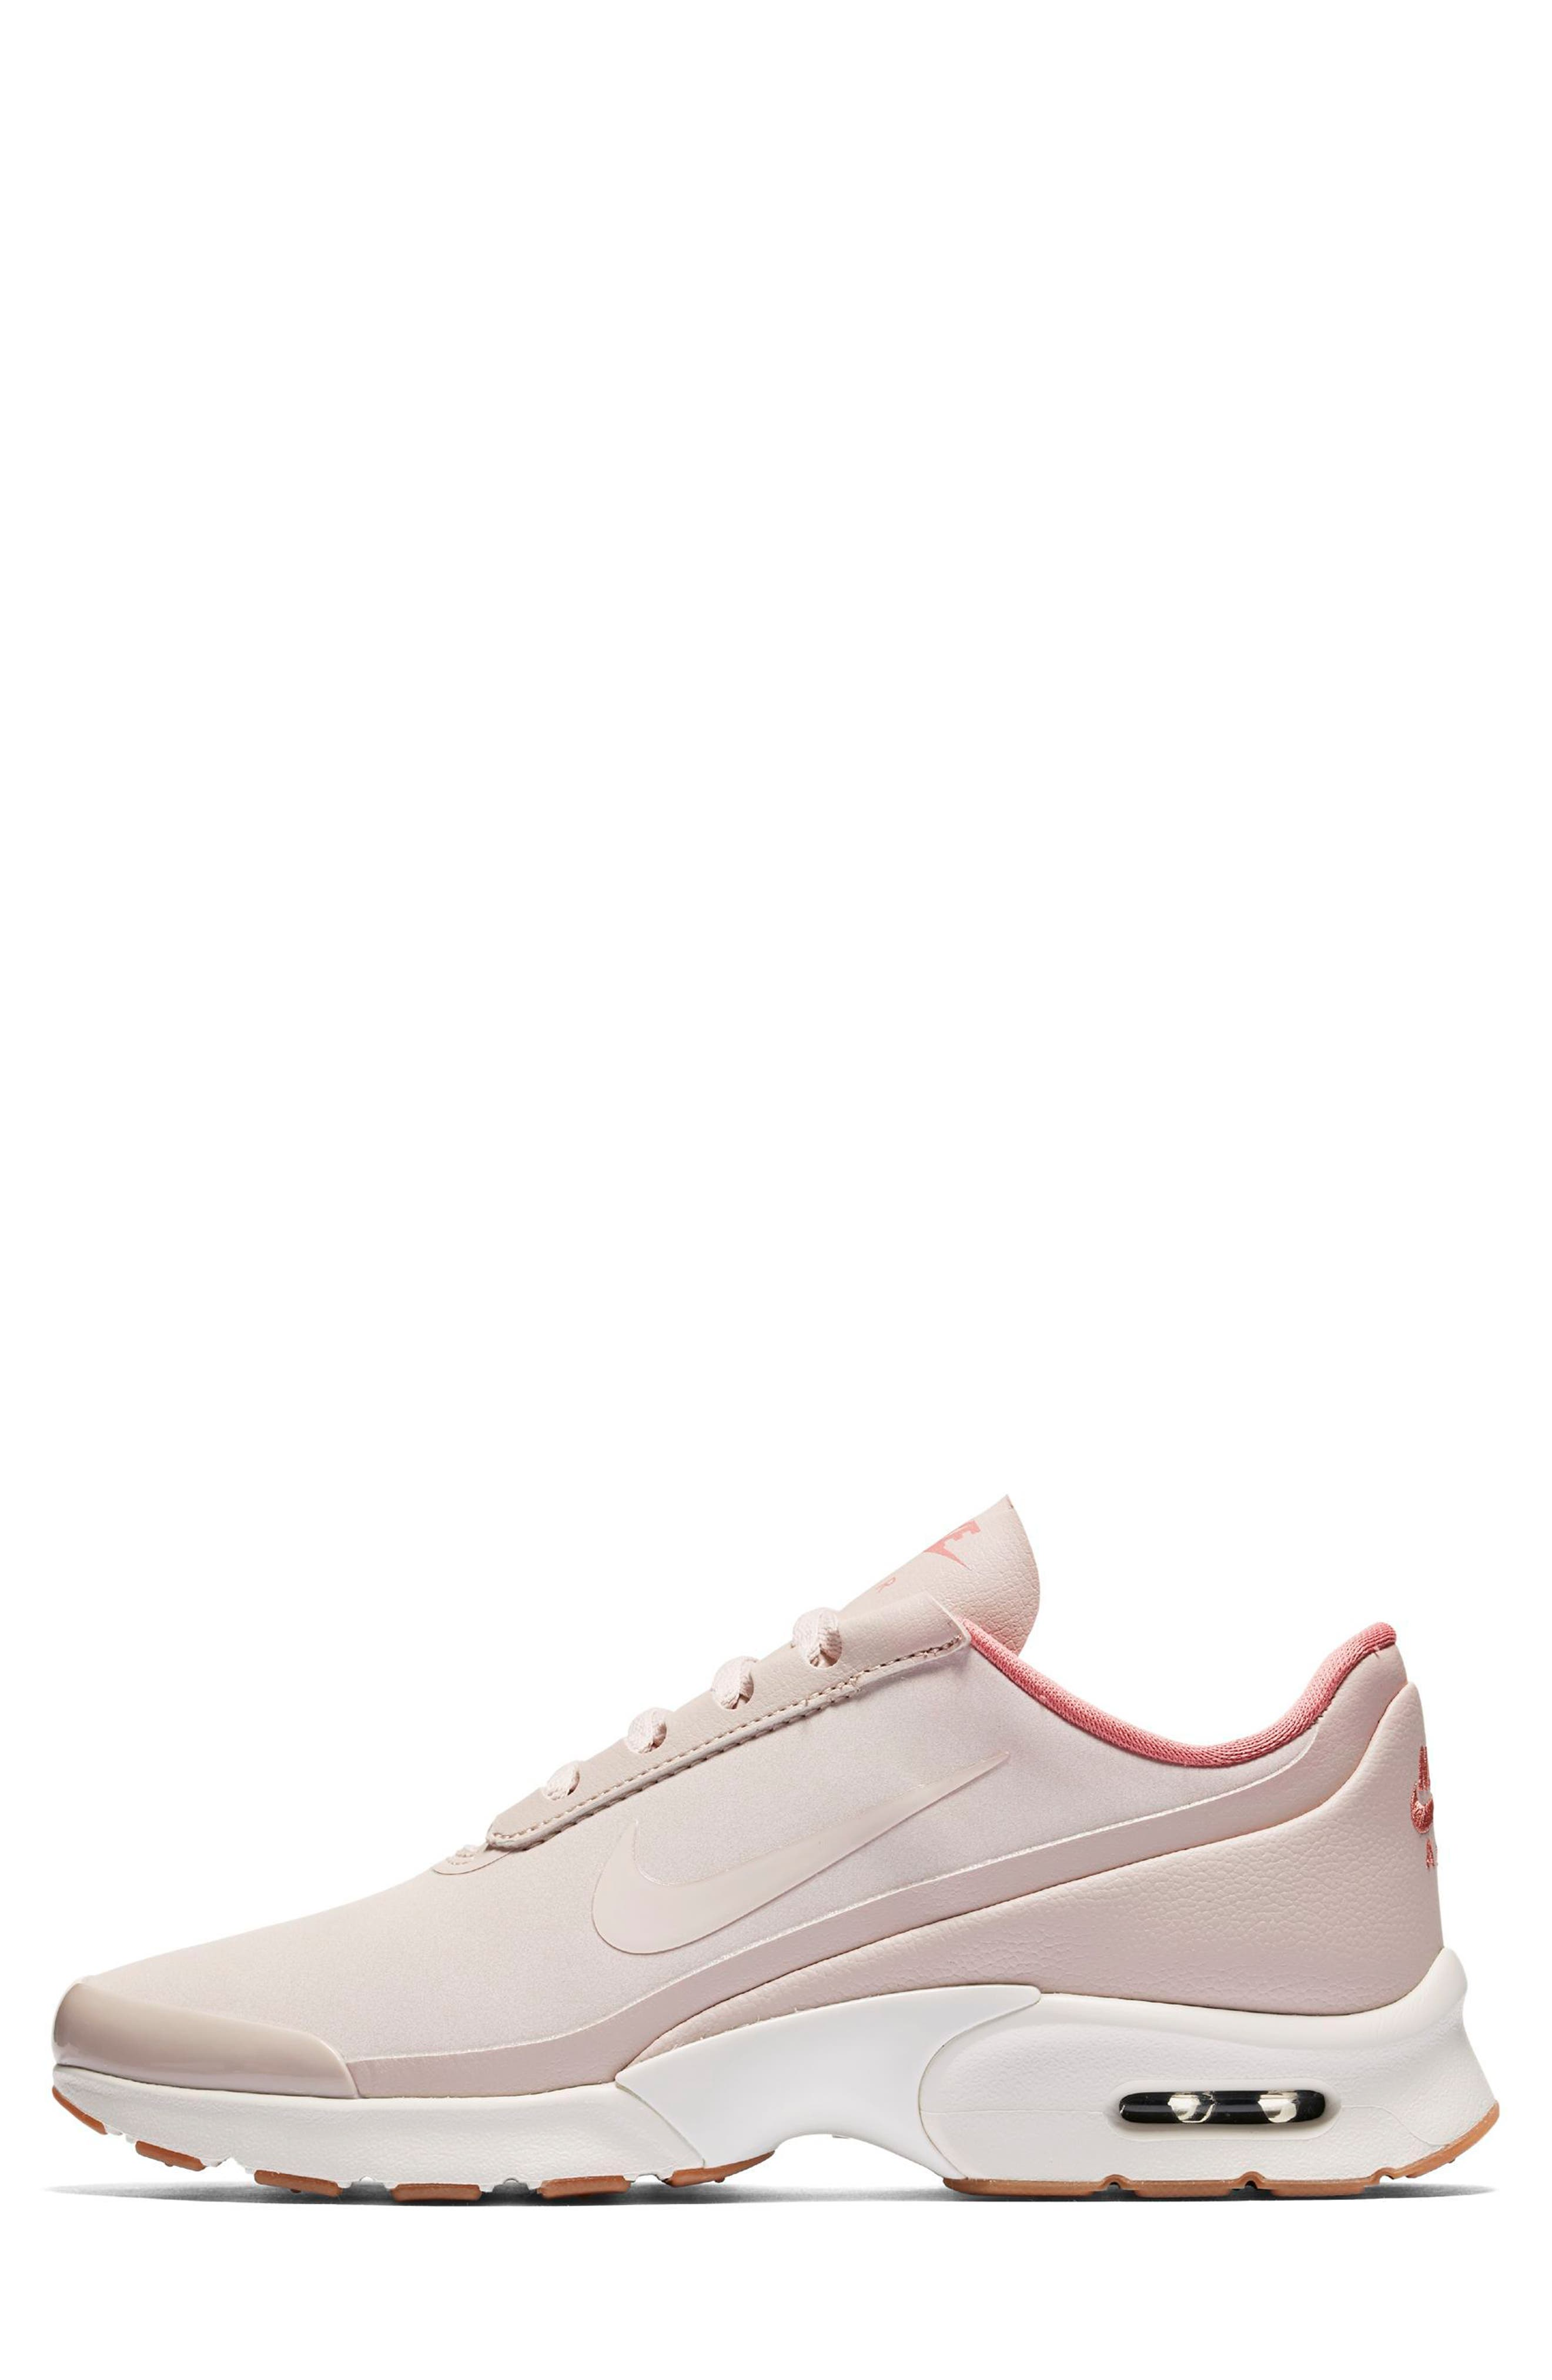 Air Max Jewell SE Sneaker,                             Alternate thumbnail 3, color,                             Red/ Red Stardust/ Sail